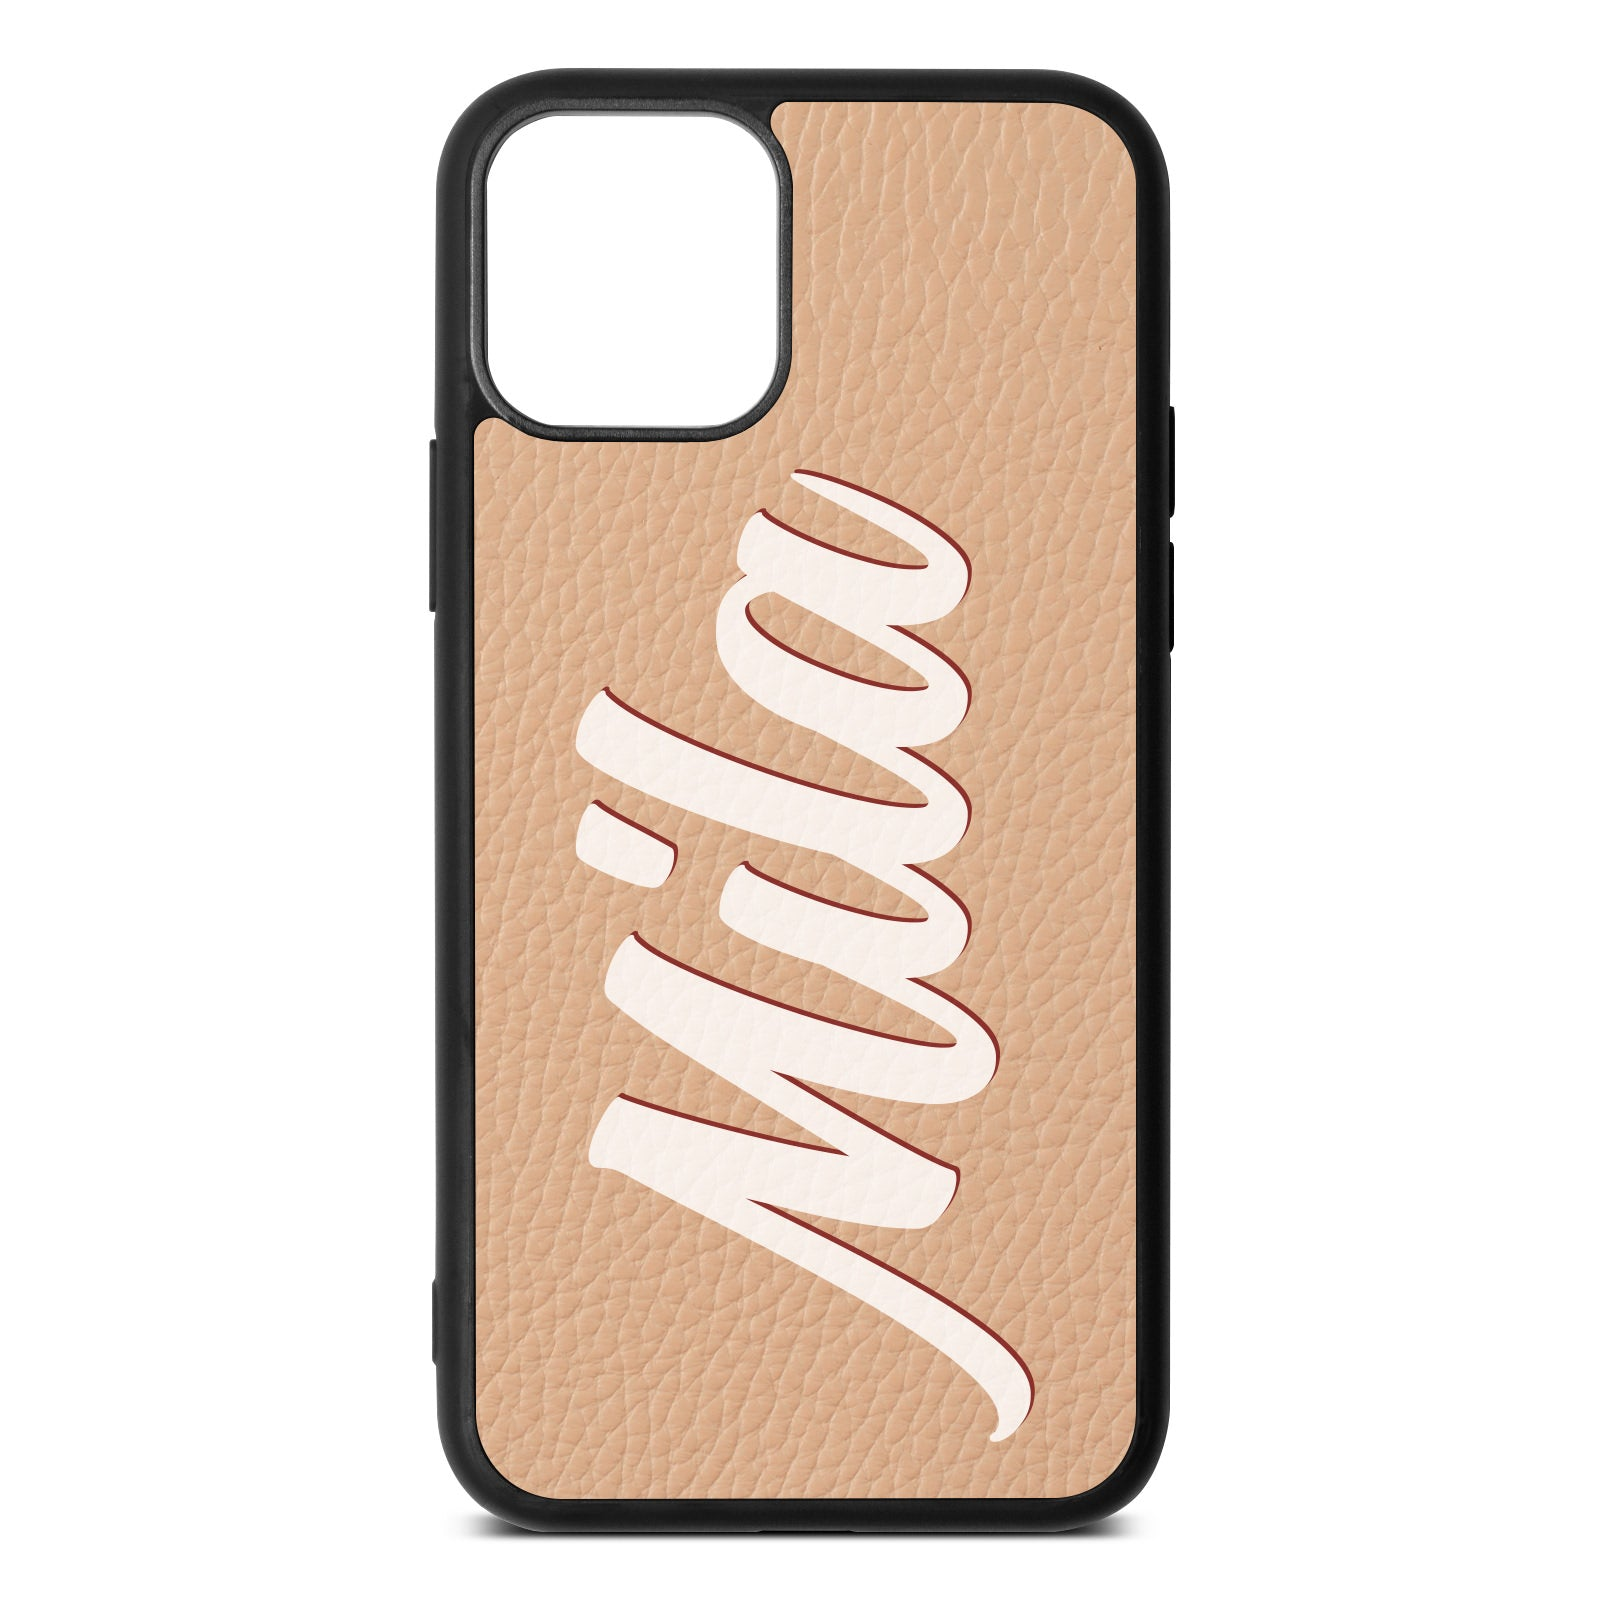 iPhone 11 Pro Nude Pebble Leather Case